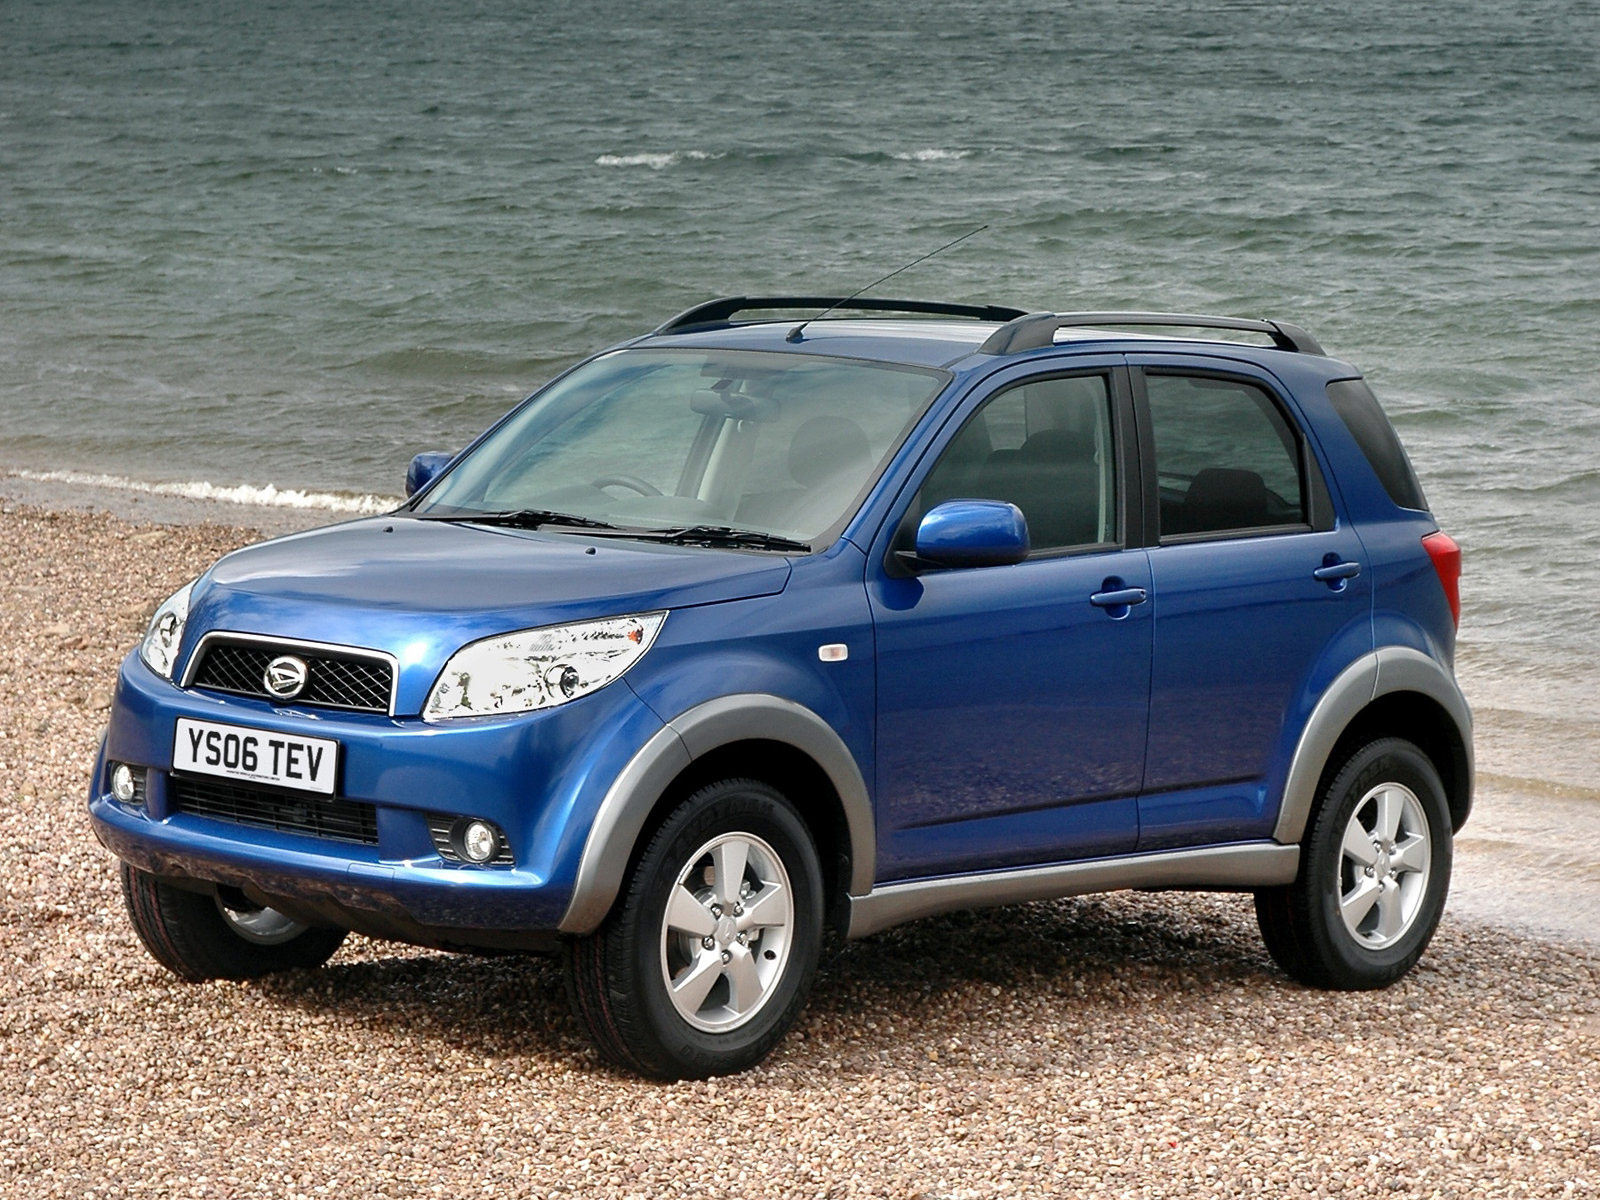 2007 DAIHATSU Terios car photos | Auto accident lawyers info